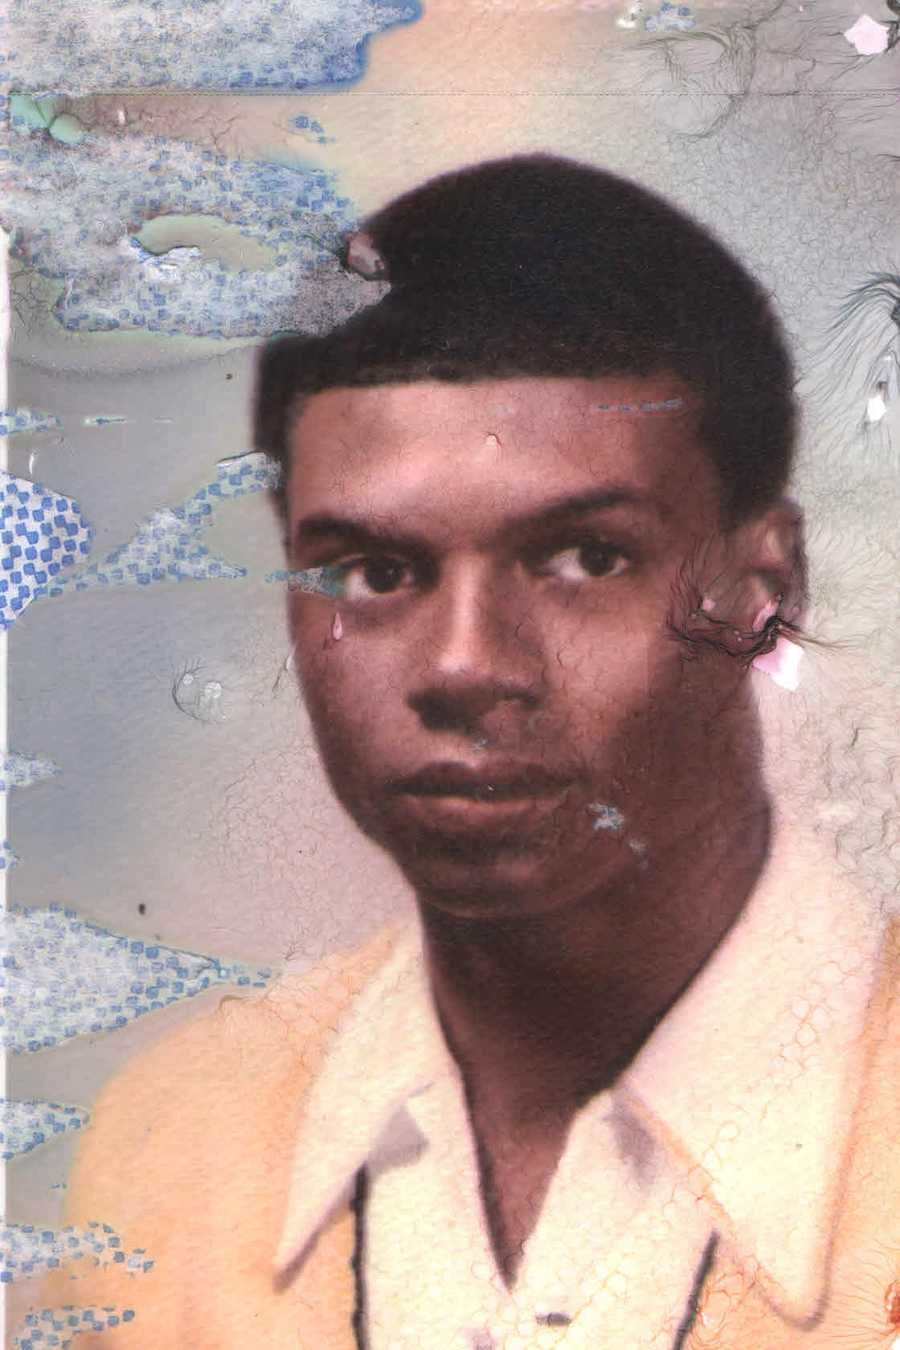 Norman Robinson's high school photo when he was in Boston, Mass. This is a photo of him at 16 years old.